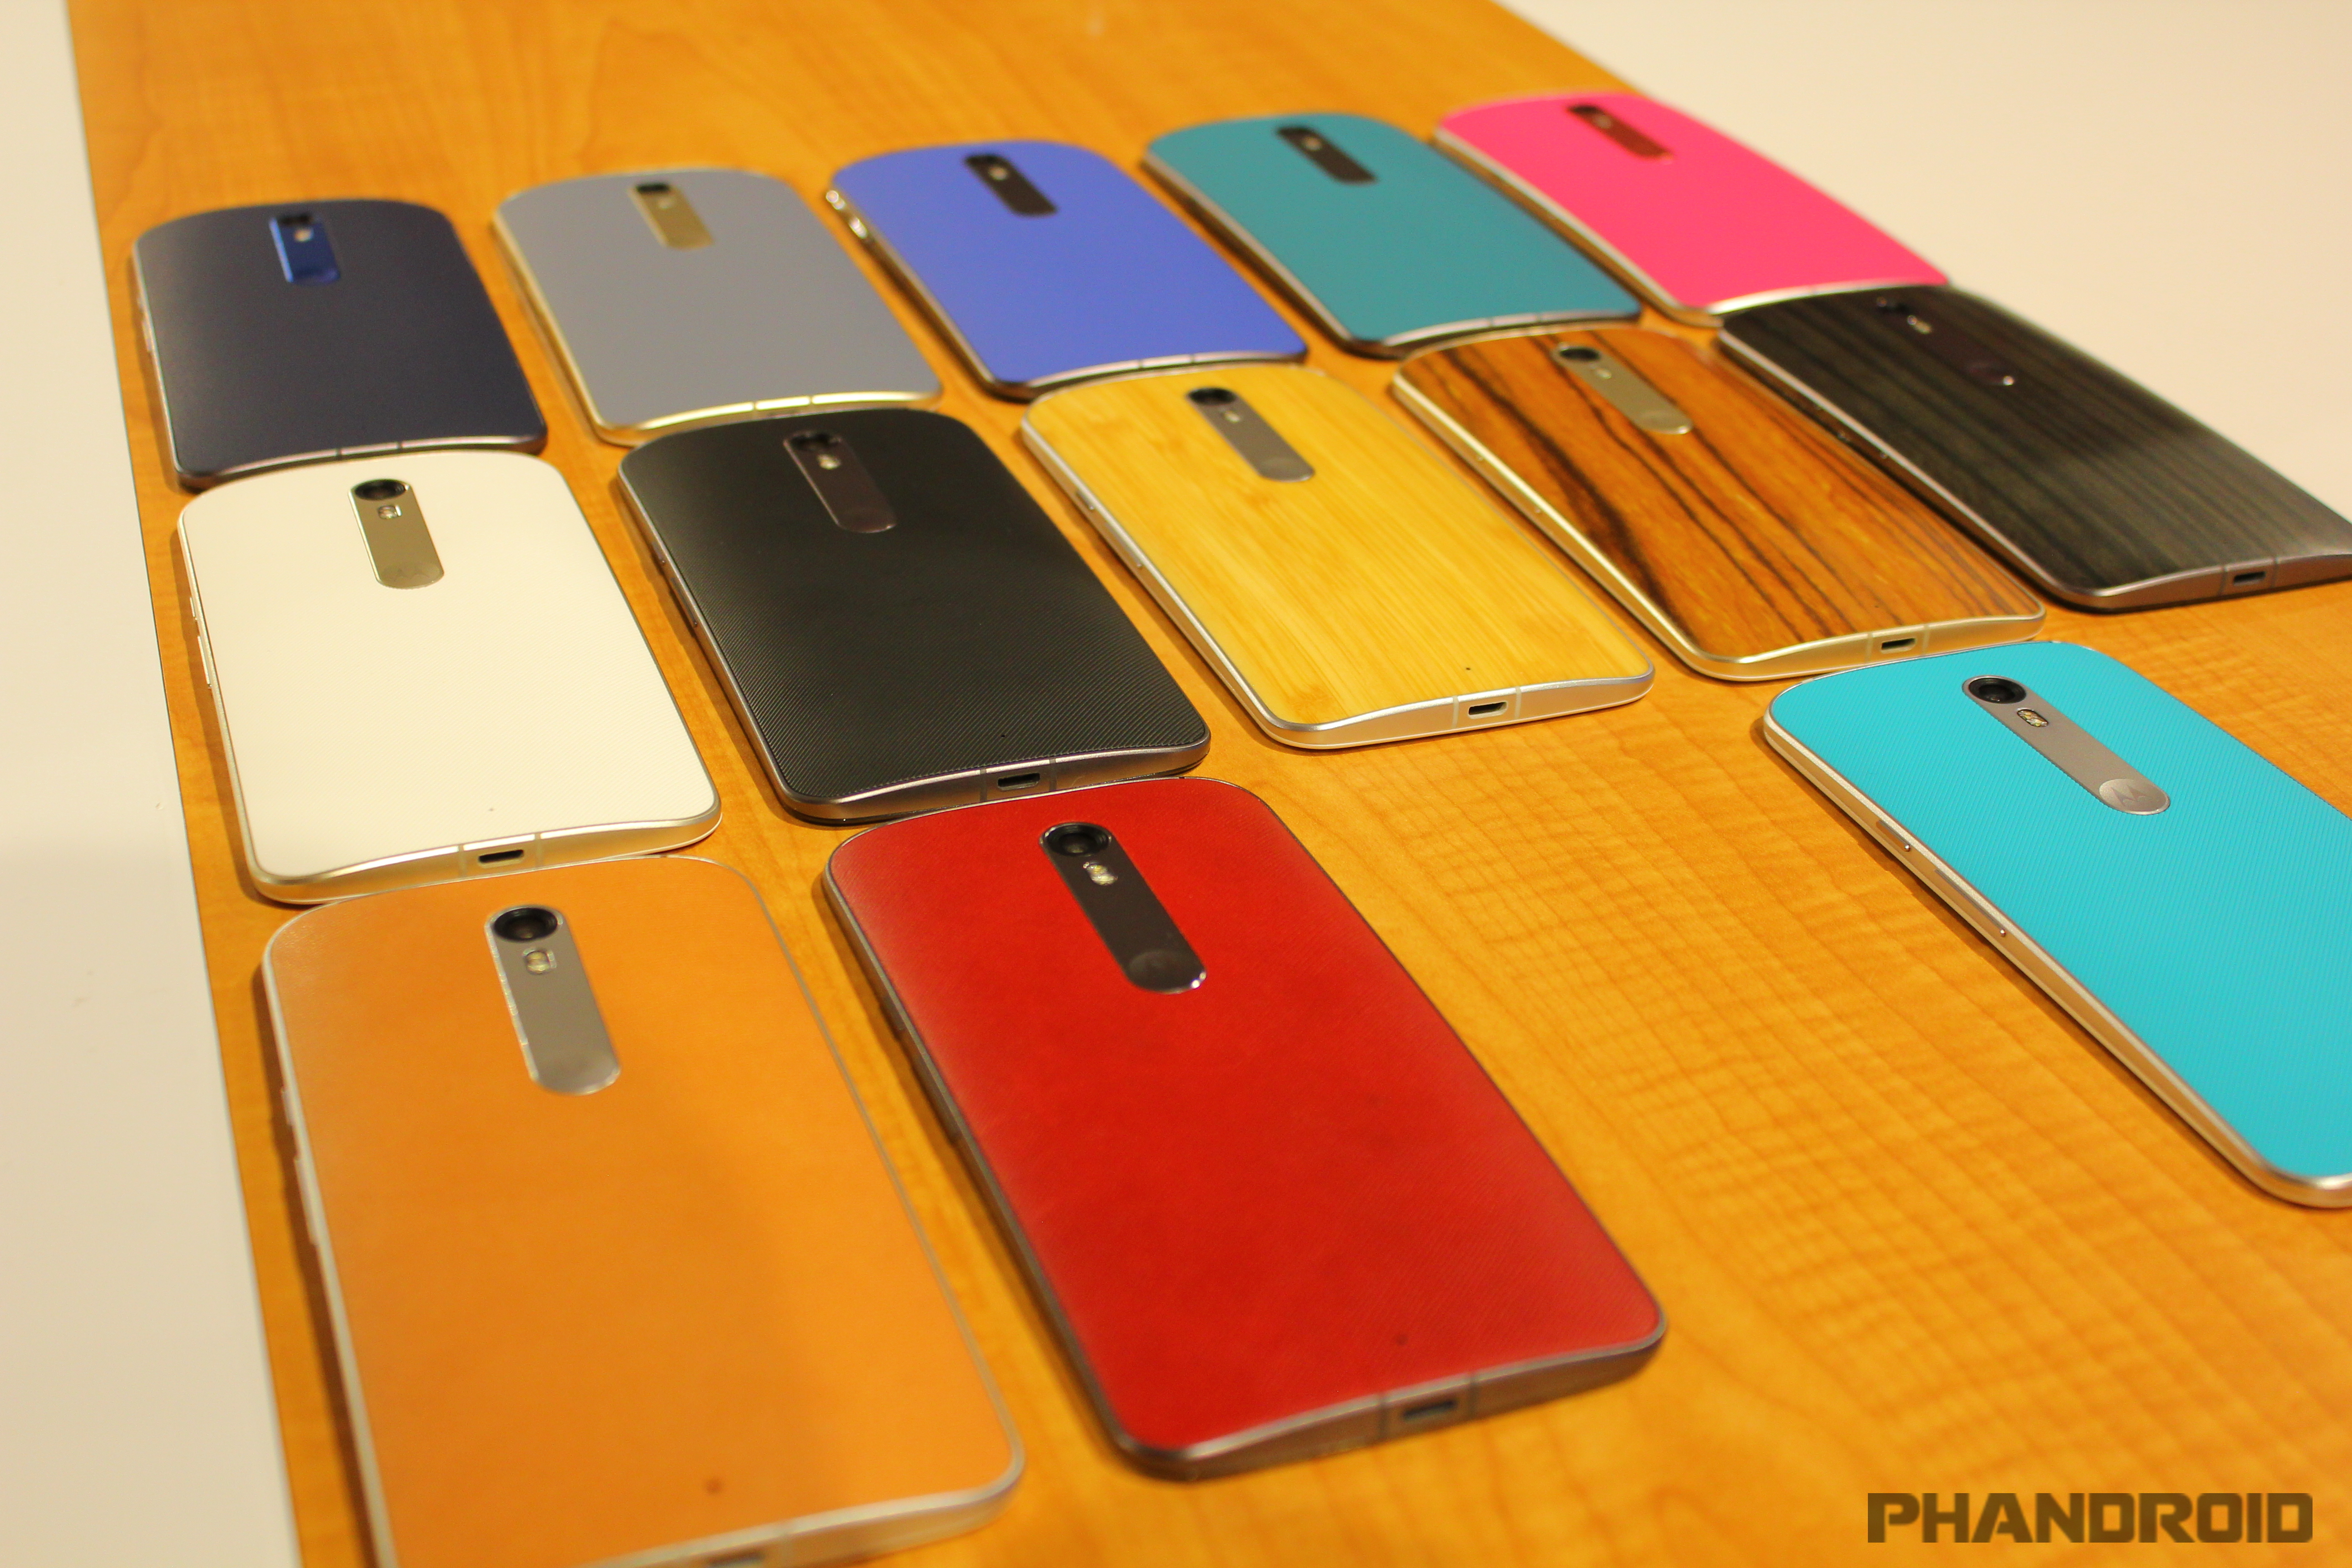 Motorola Calgary, Will Be Available in Different Colors